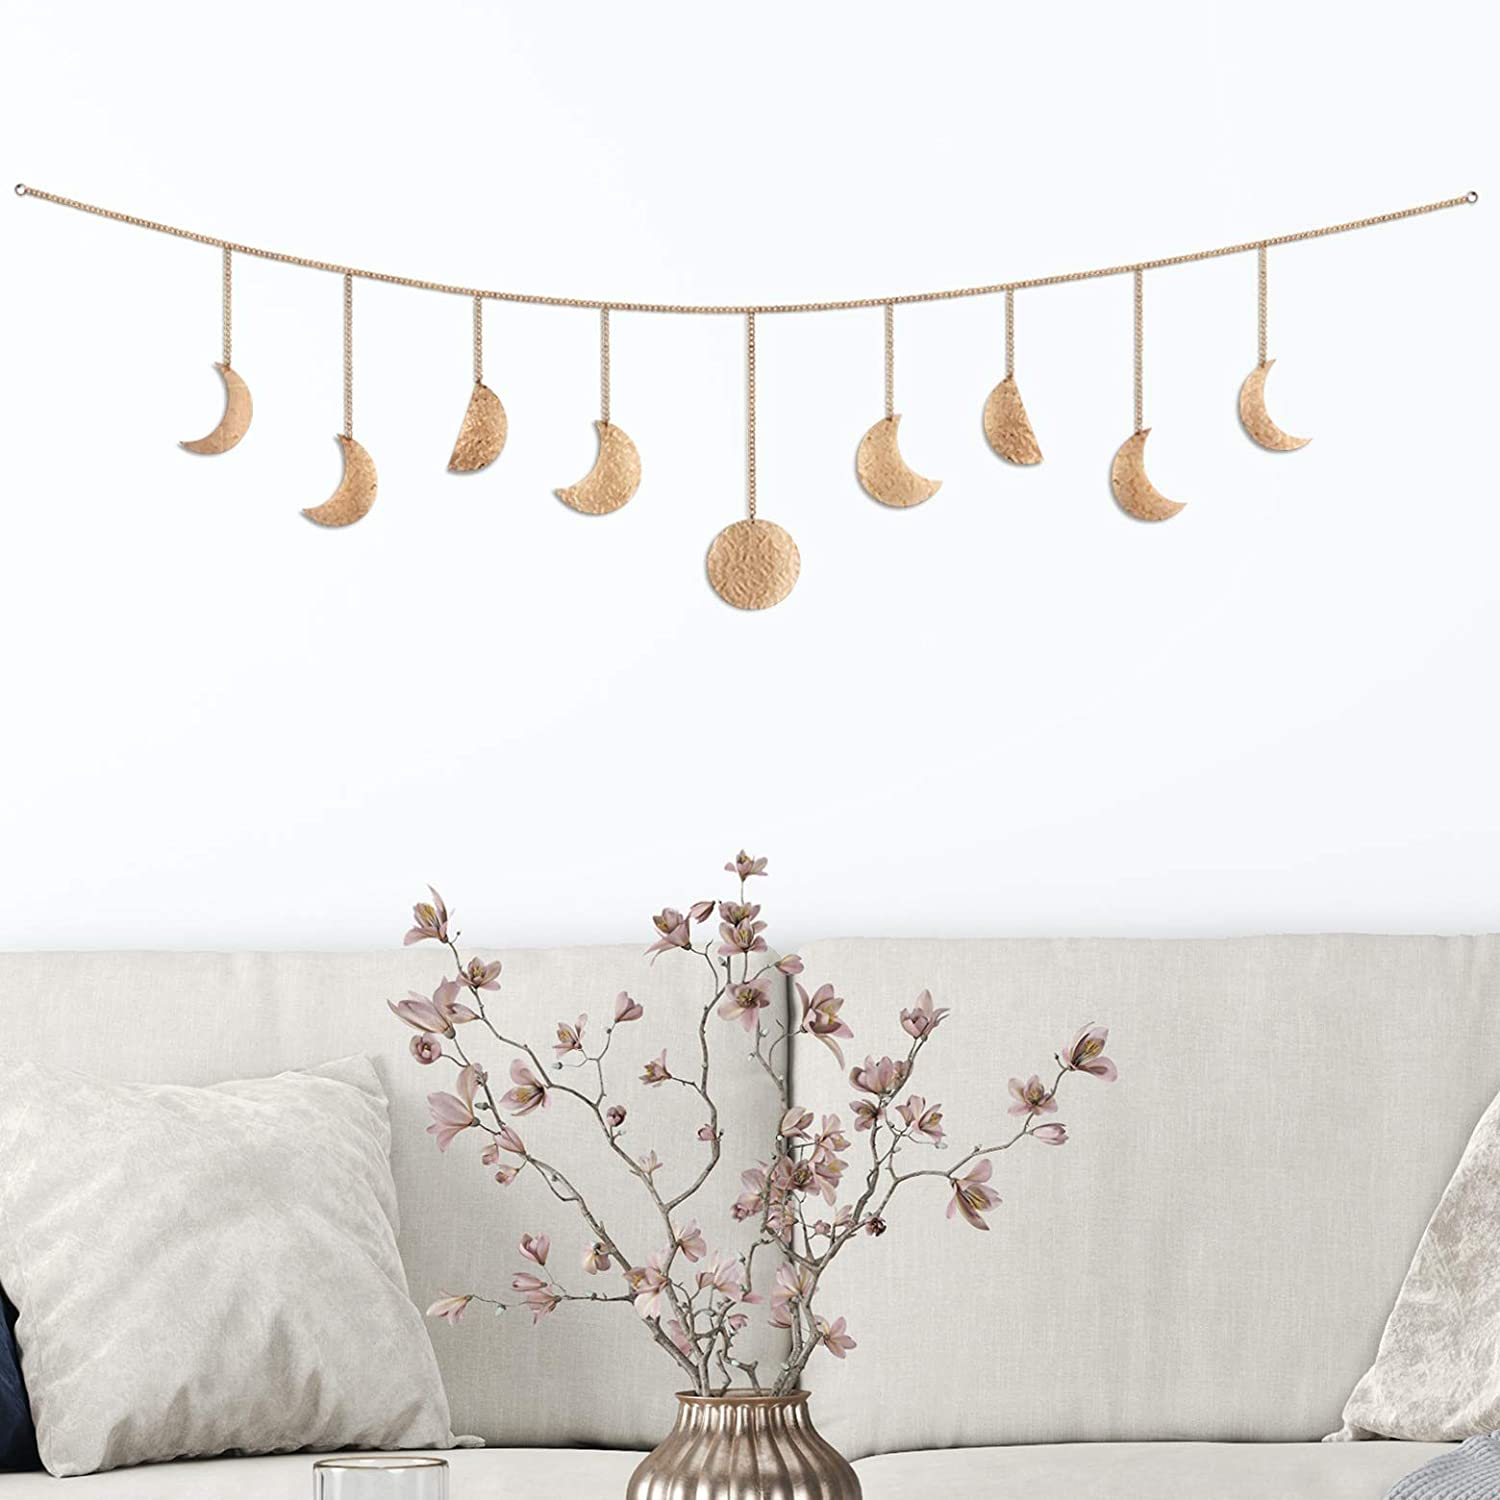 Moon and Gaia Moon Phase Wall Hanging, Rose Gold - Unique, Lightweight Moon Phase Garland - Handmade, Hammered Metal Moon Cycle Banner - Premium Boho Wall Decor for Bedroom, Dorm, Living Room, Nursery